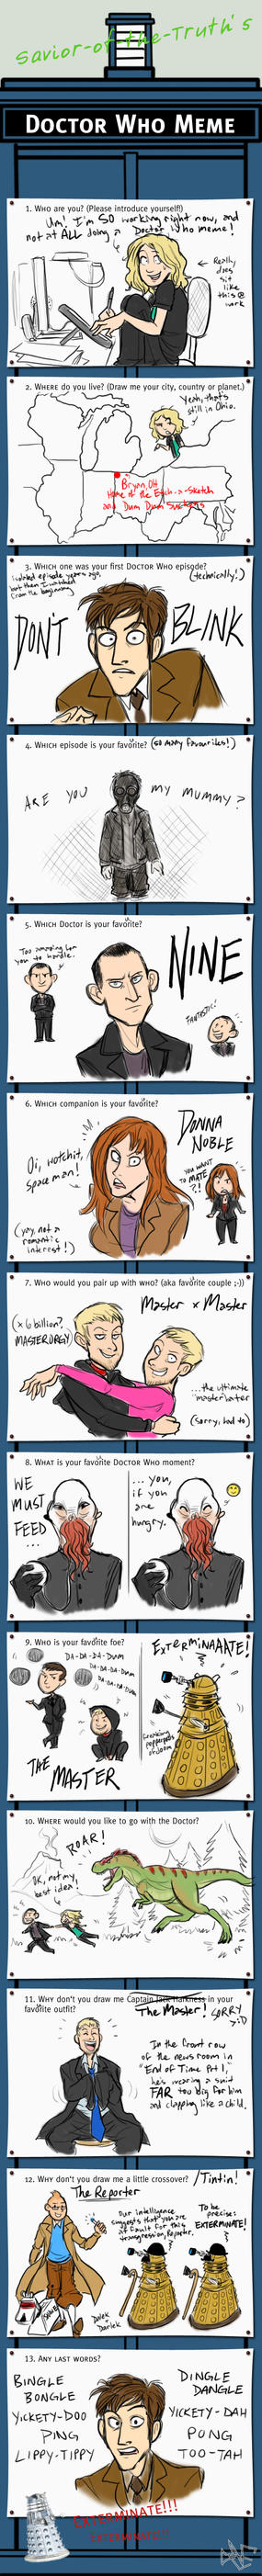 Doctor Who Memetime by Inonibird